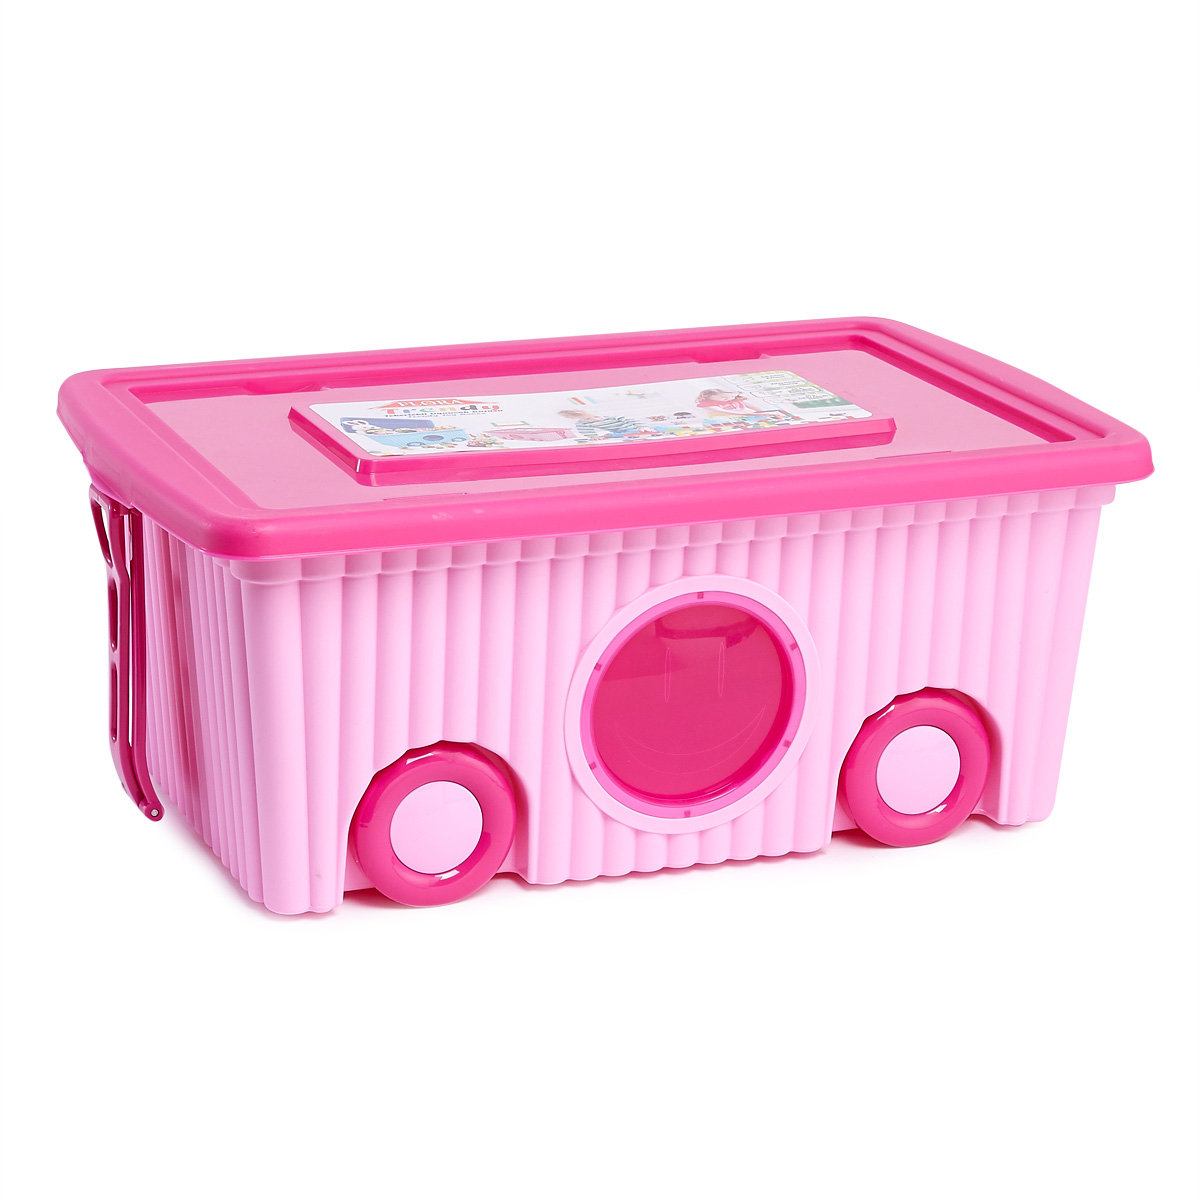 Trendy Storage Box With Wheels (Random Colour) (Body, Cover)